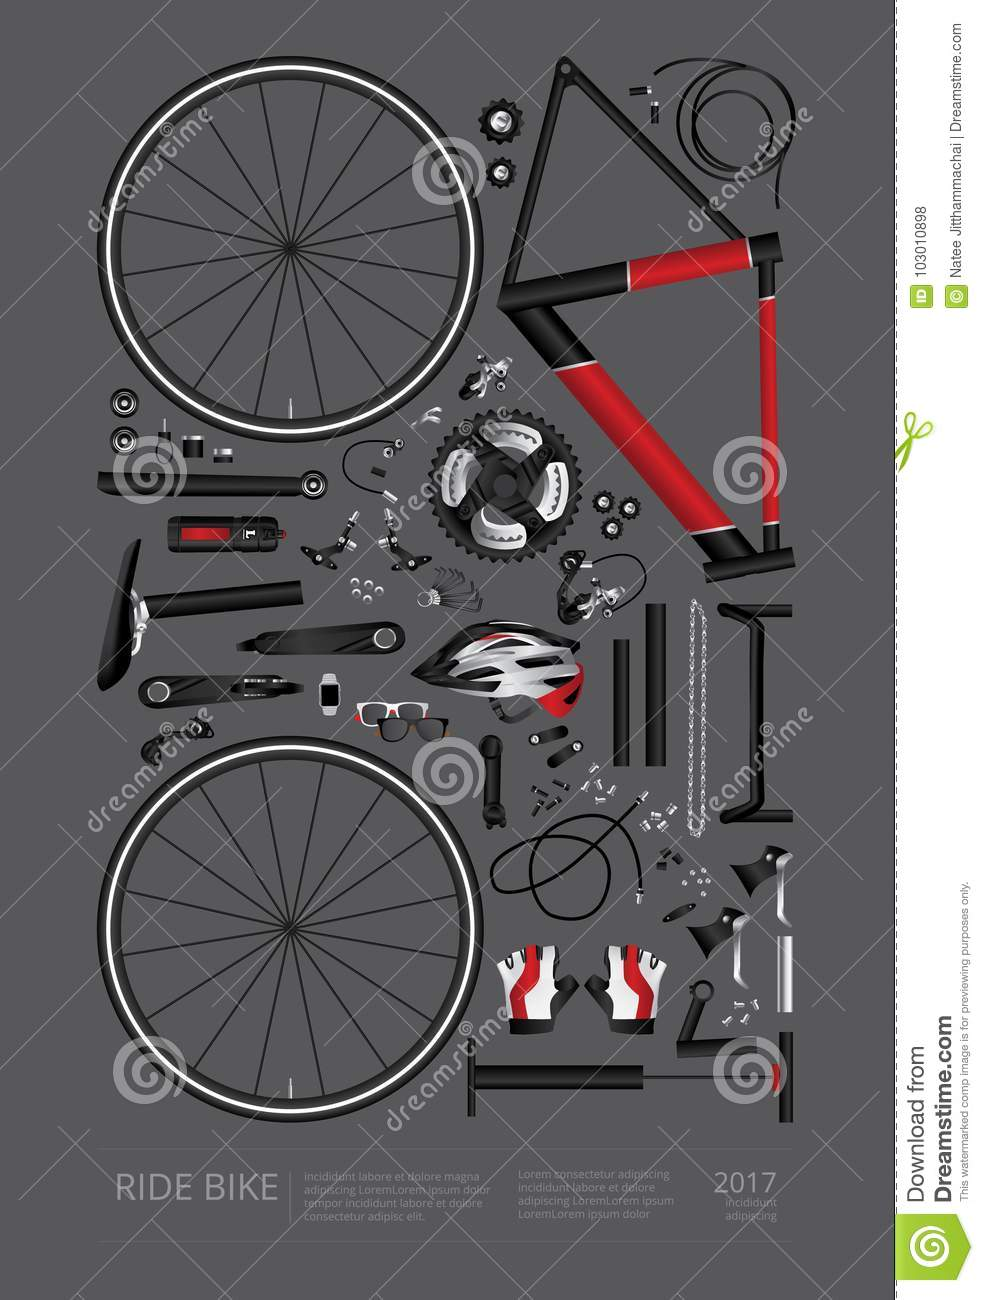 bicycle assembly poster advertising stock vector illustration of rh dreamstime com bike assembly diagram bicycle parts diagram pdf